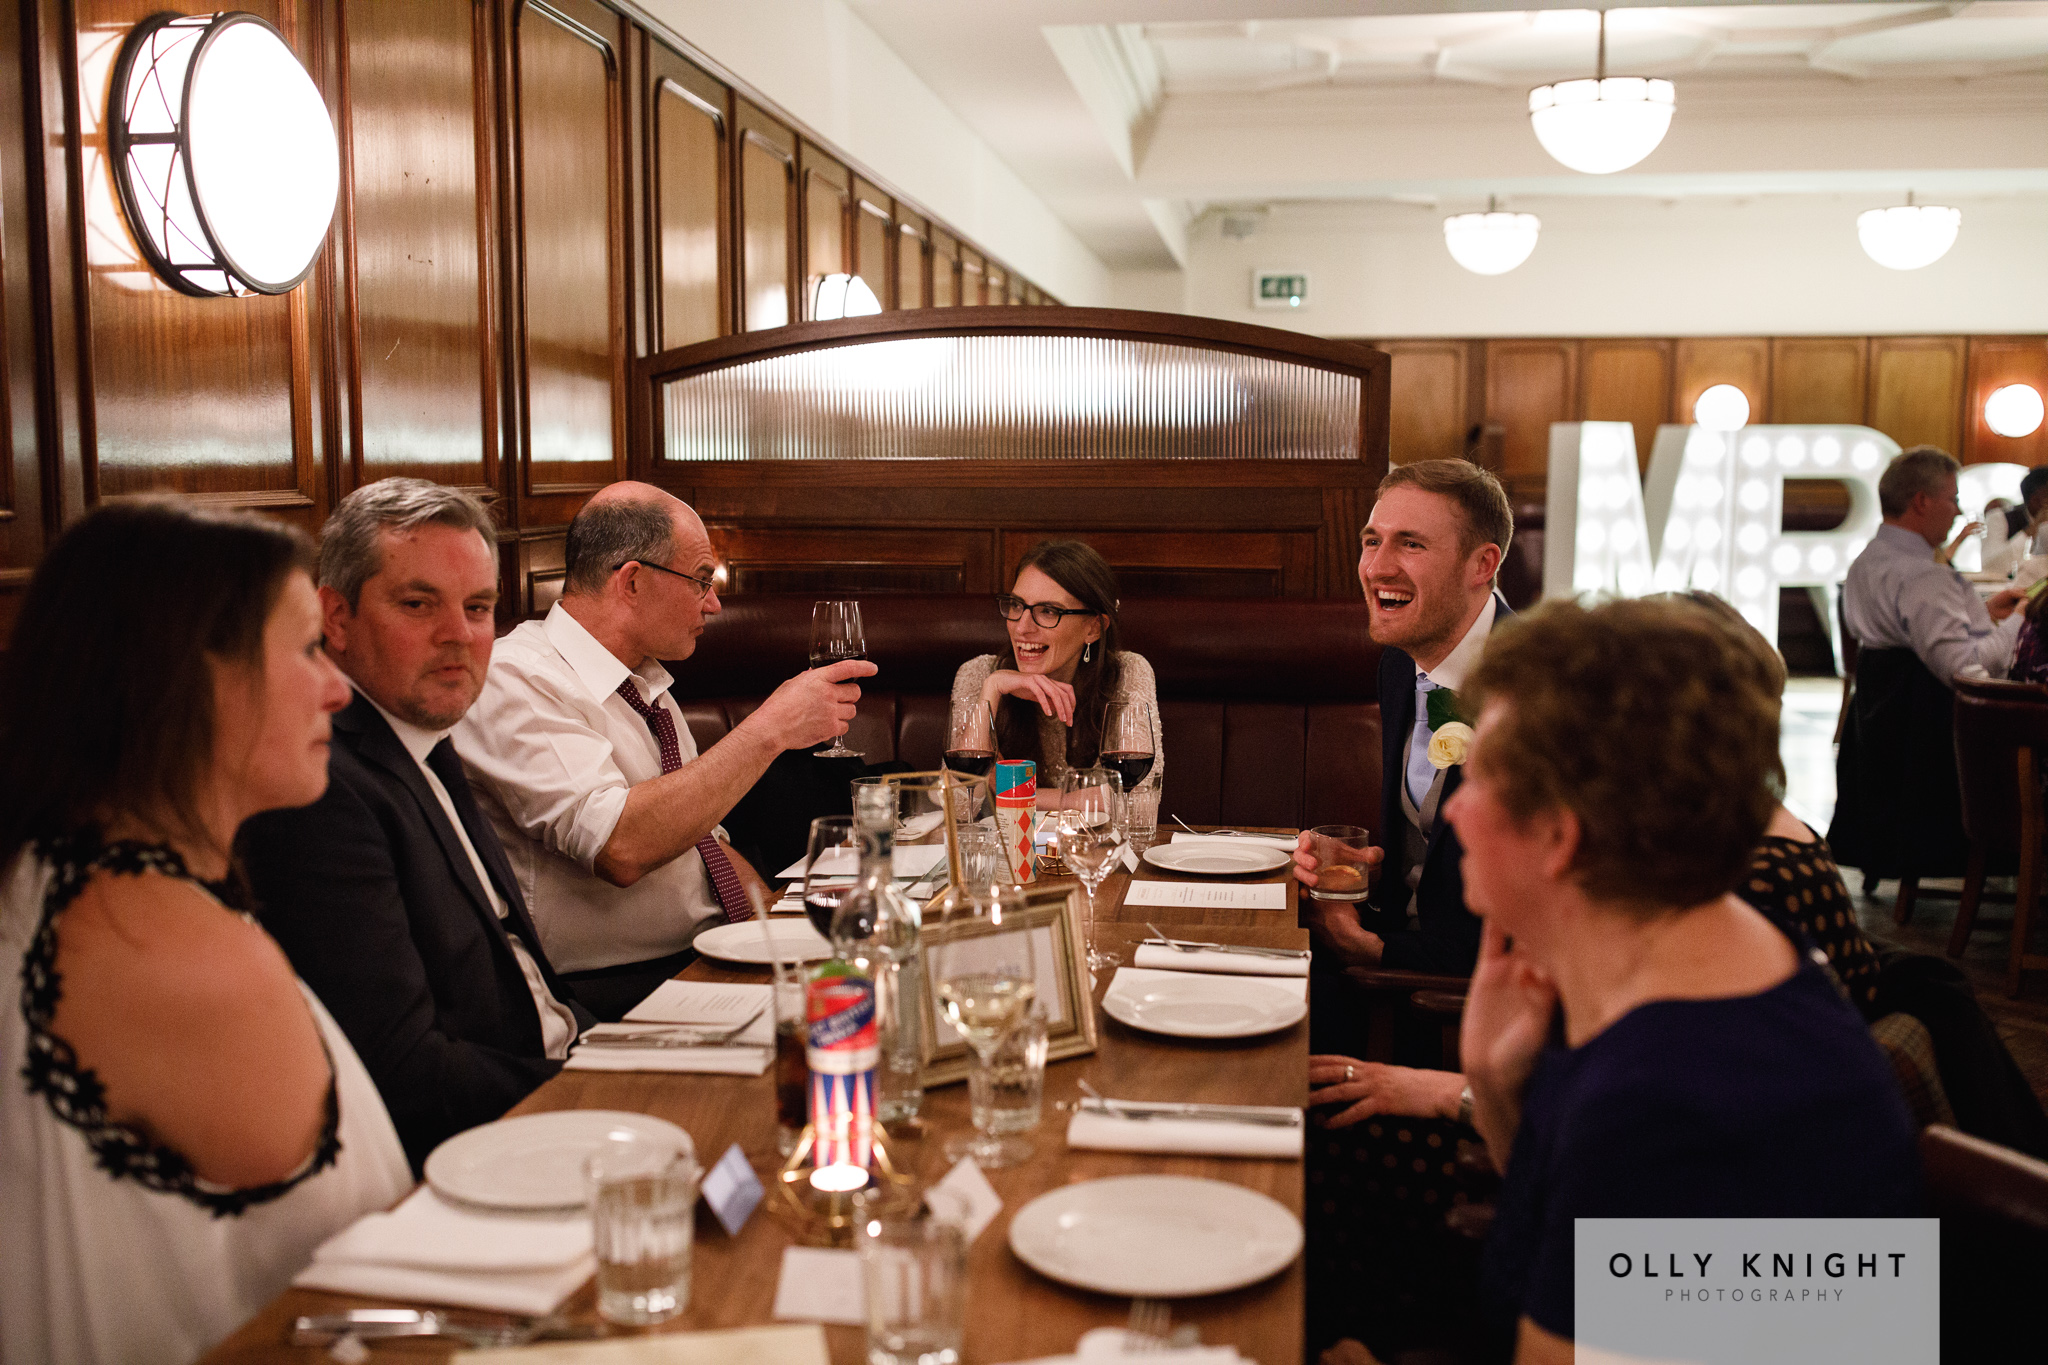 Mike & Caroline's Wedding at Hawksmoor Restaurant in London